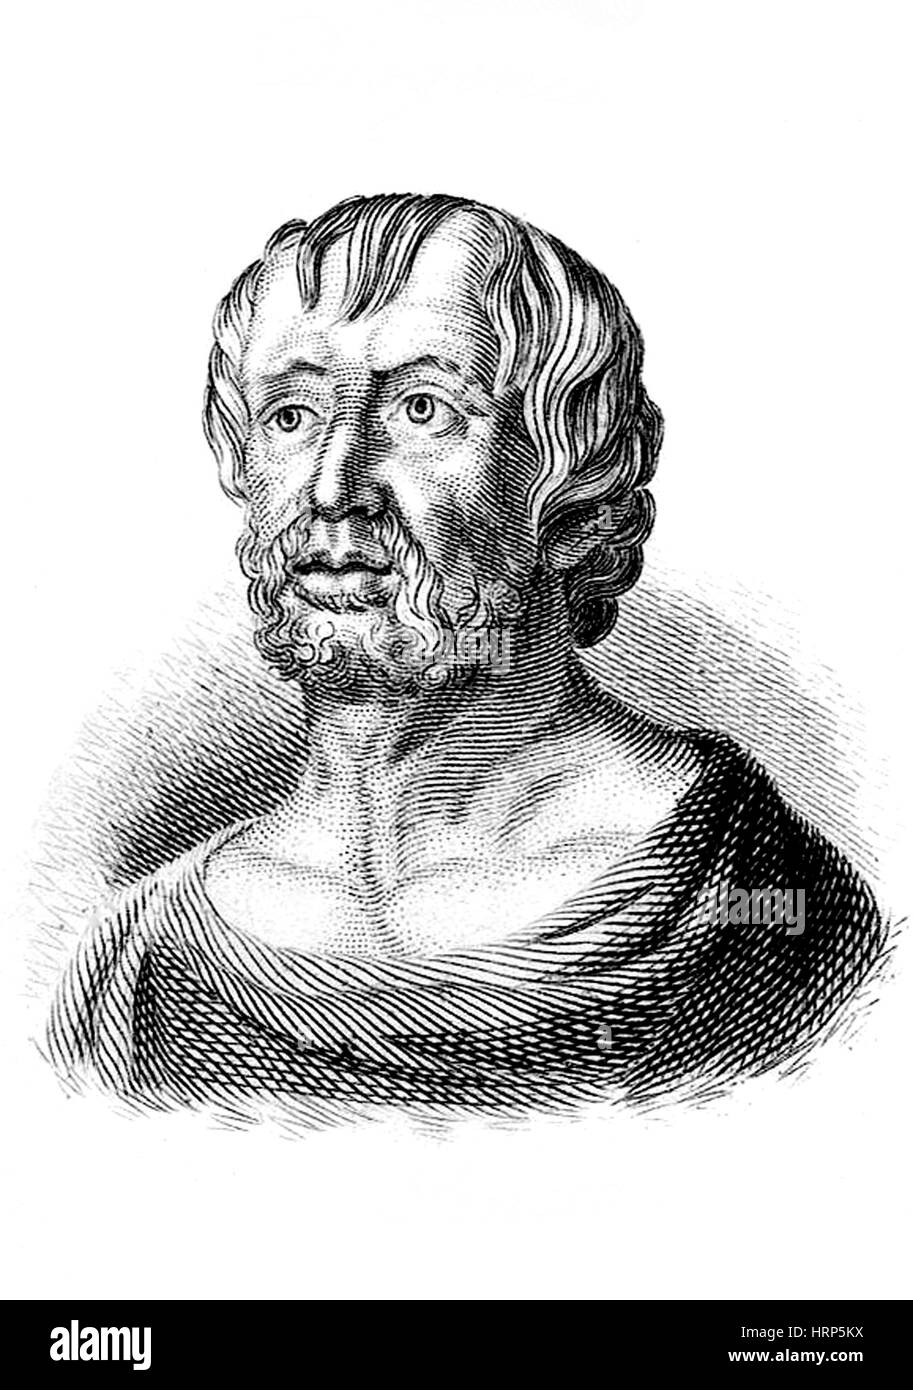 Seneca the Younger, Ancient Roman Philosopher - Stock Image